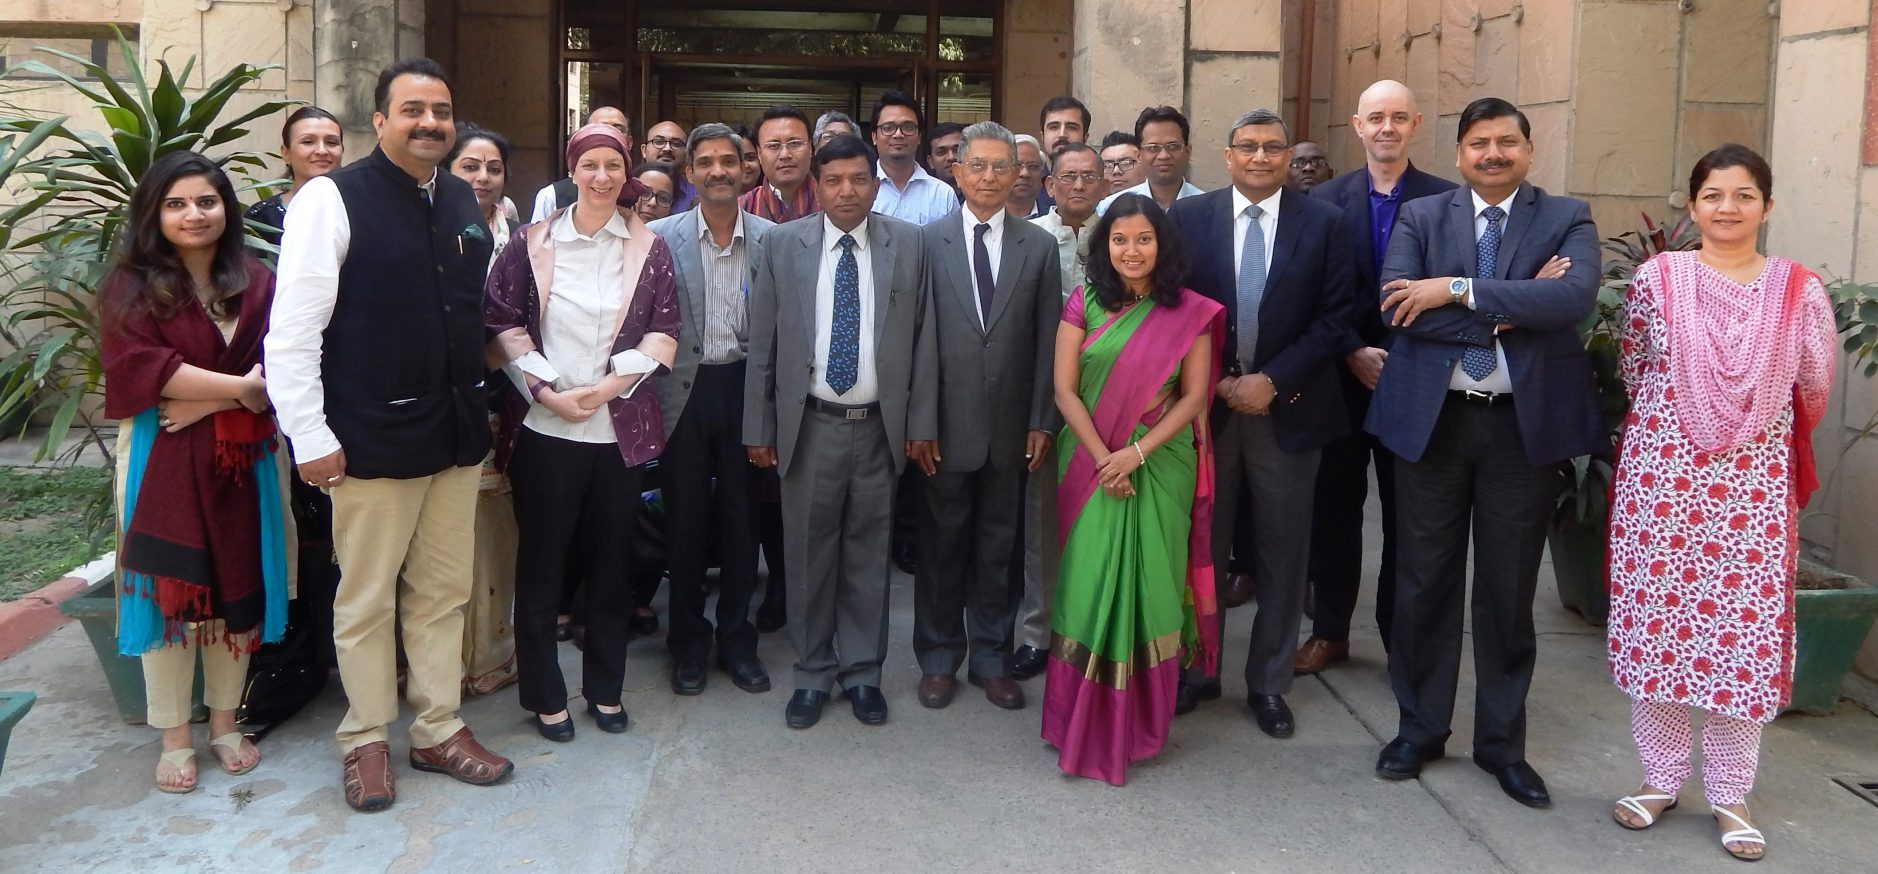 Symposium on Old-Age Income Security and Universal Basic Income in South Asia